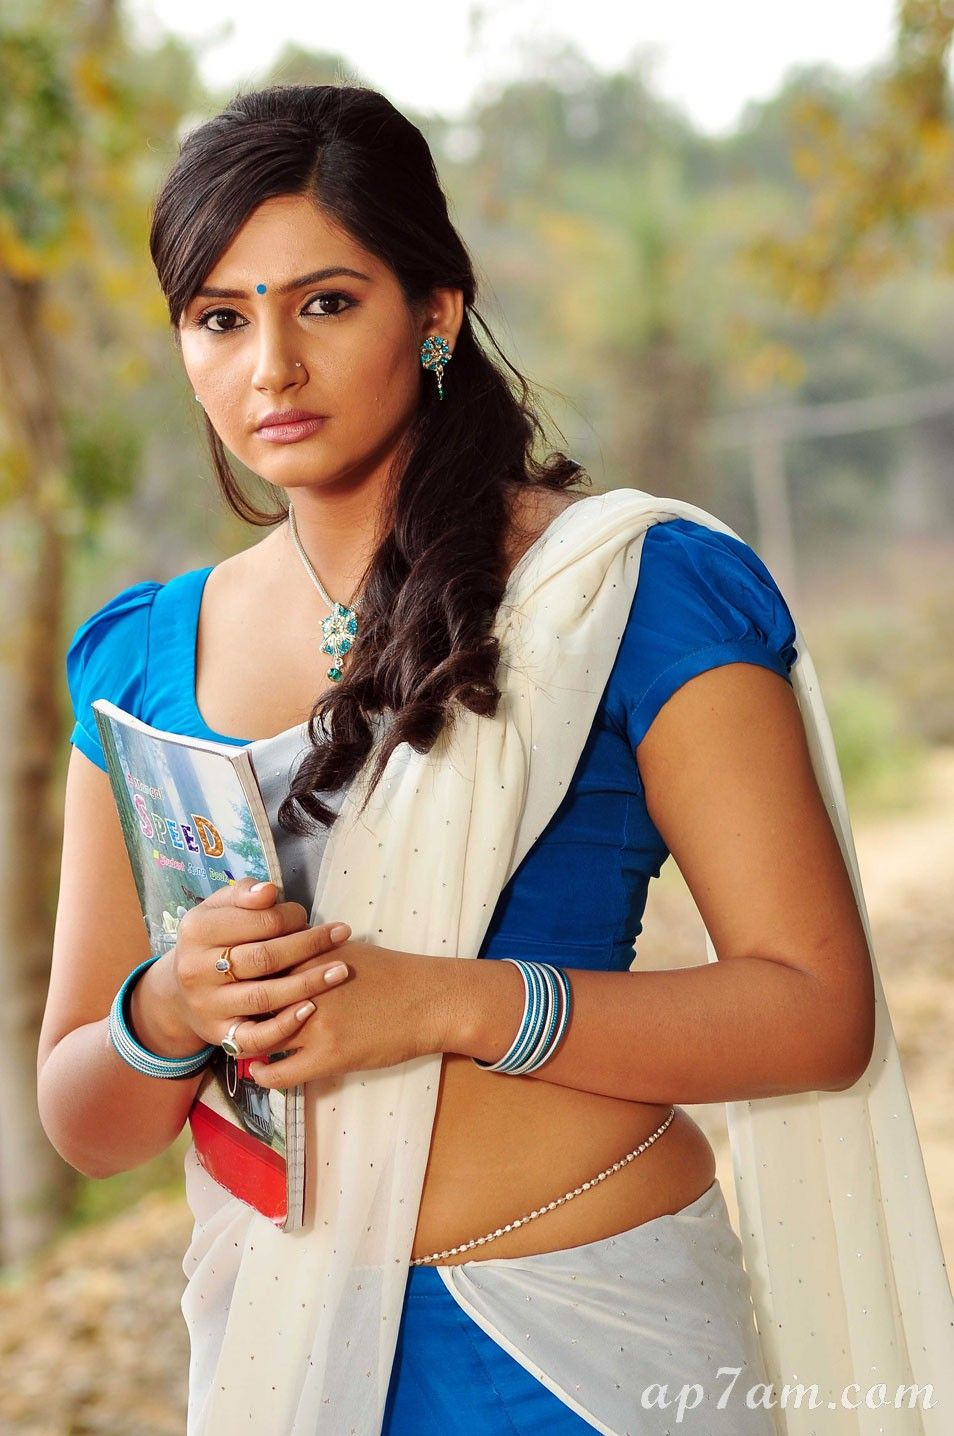 Discussion on this topic: Ralph Endersby, ragini-dwivedi/